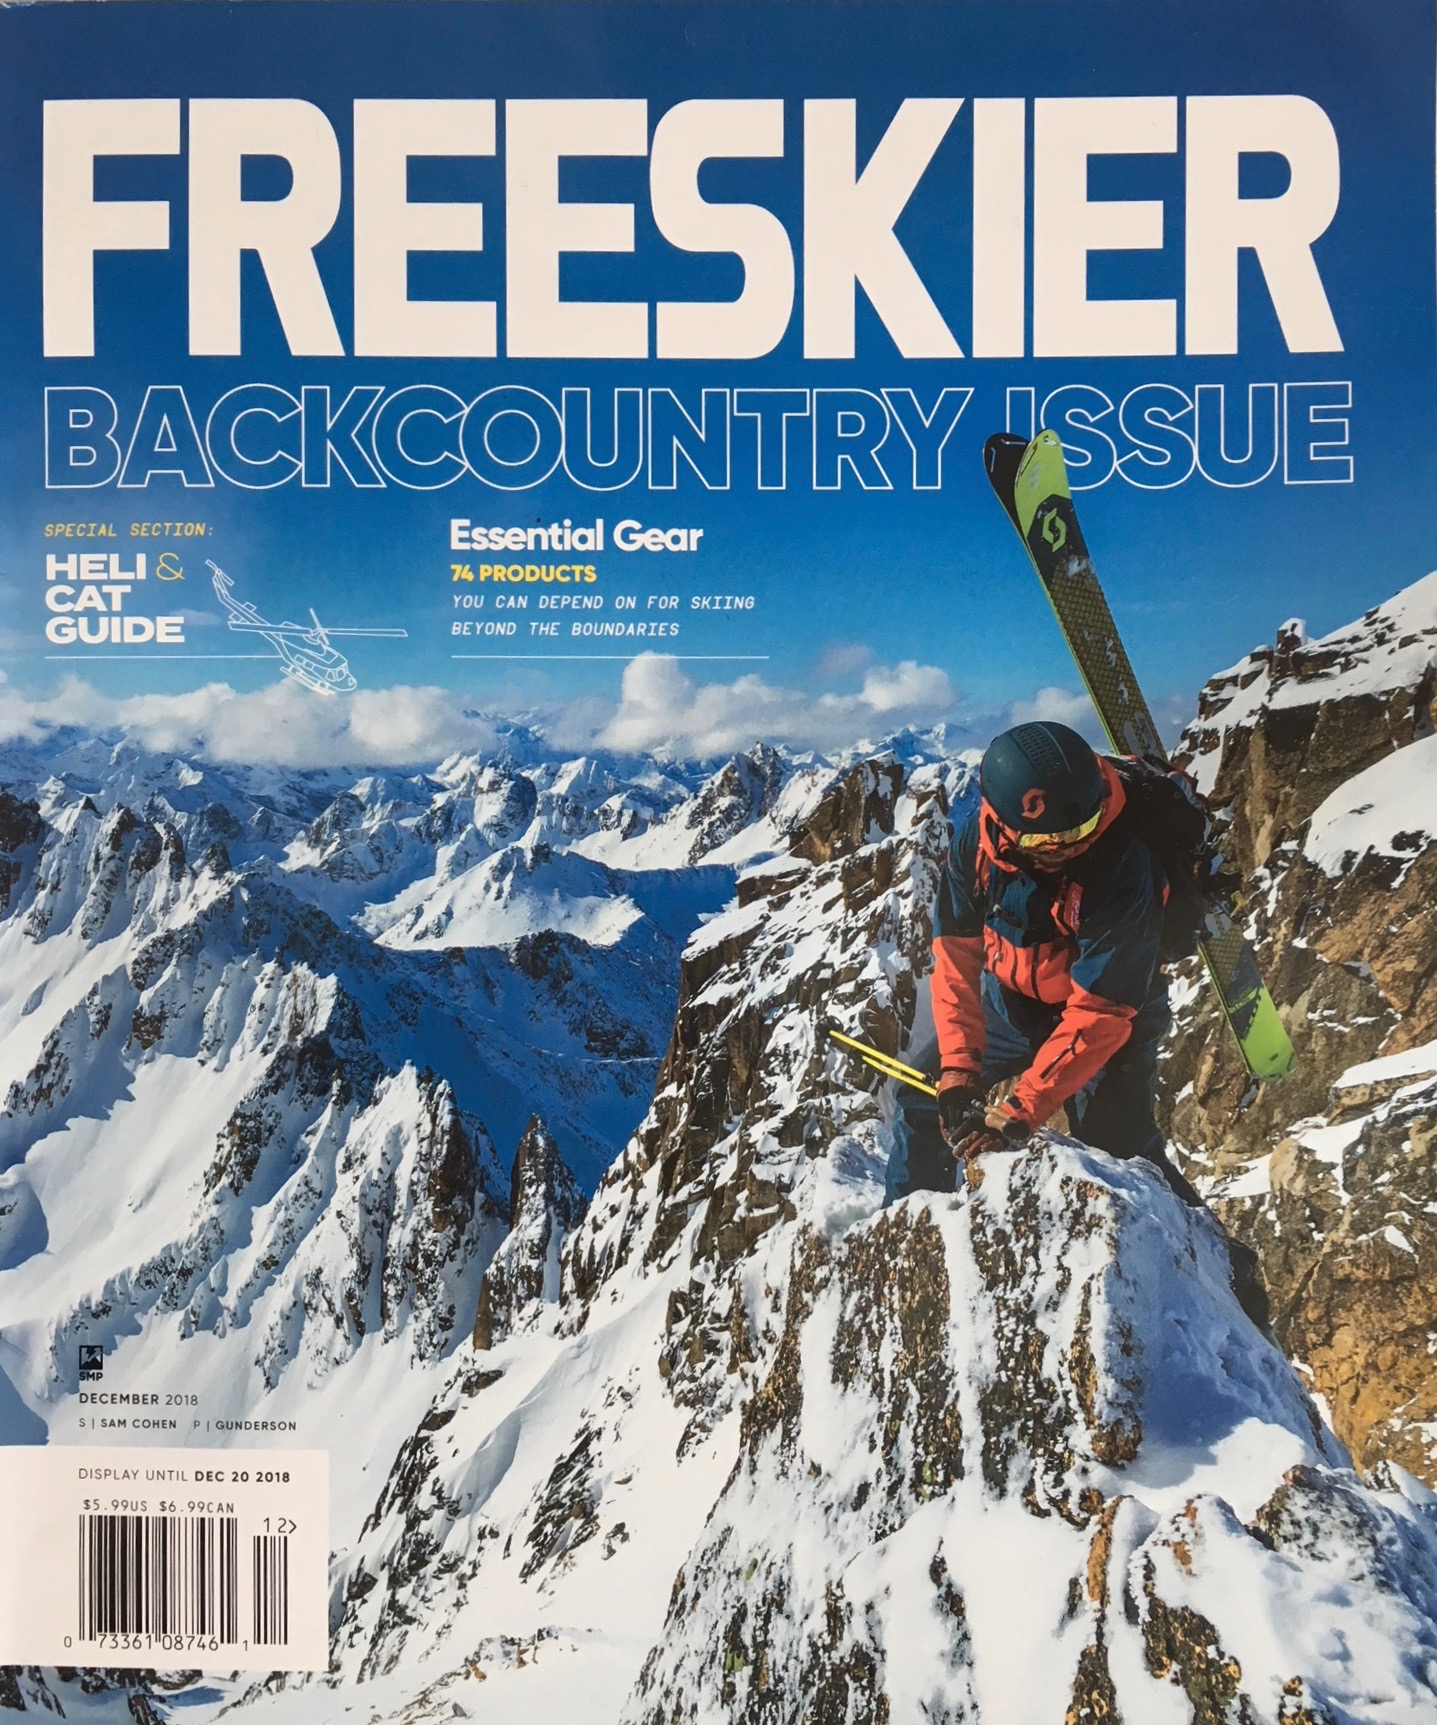 FREESKIER Magazine, December 2018     An essay explaing how the true ski bum is helping save the world through minimalist living, shunning the empty, wasteful world of over-consumerism, and finding fulfillment in conservation of resources and nature. Really!